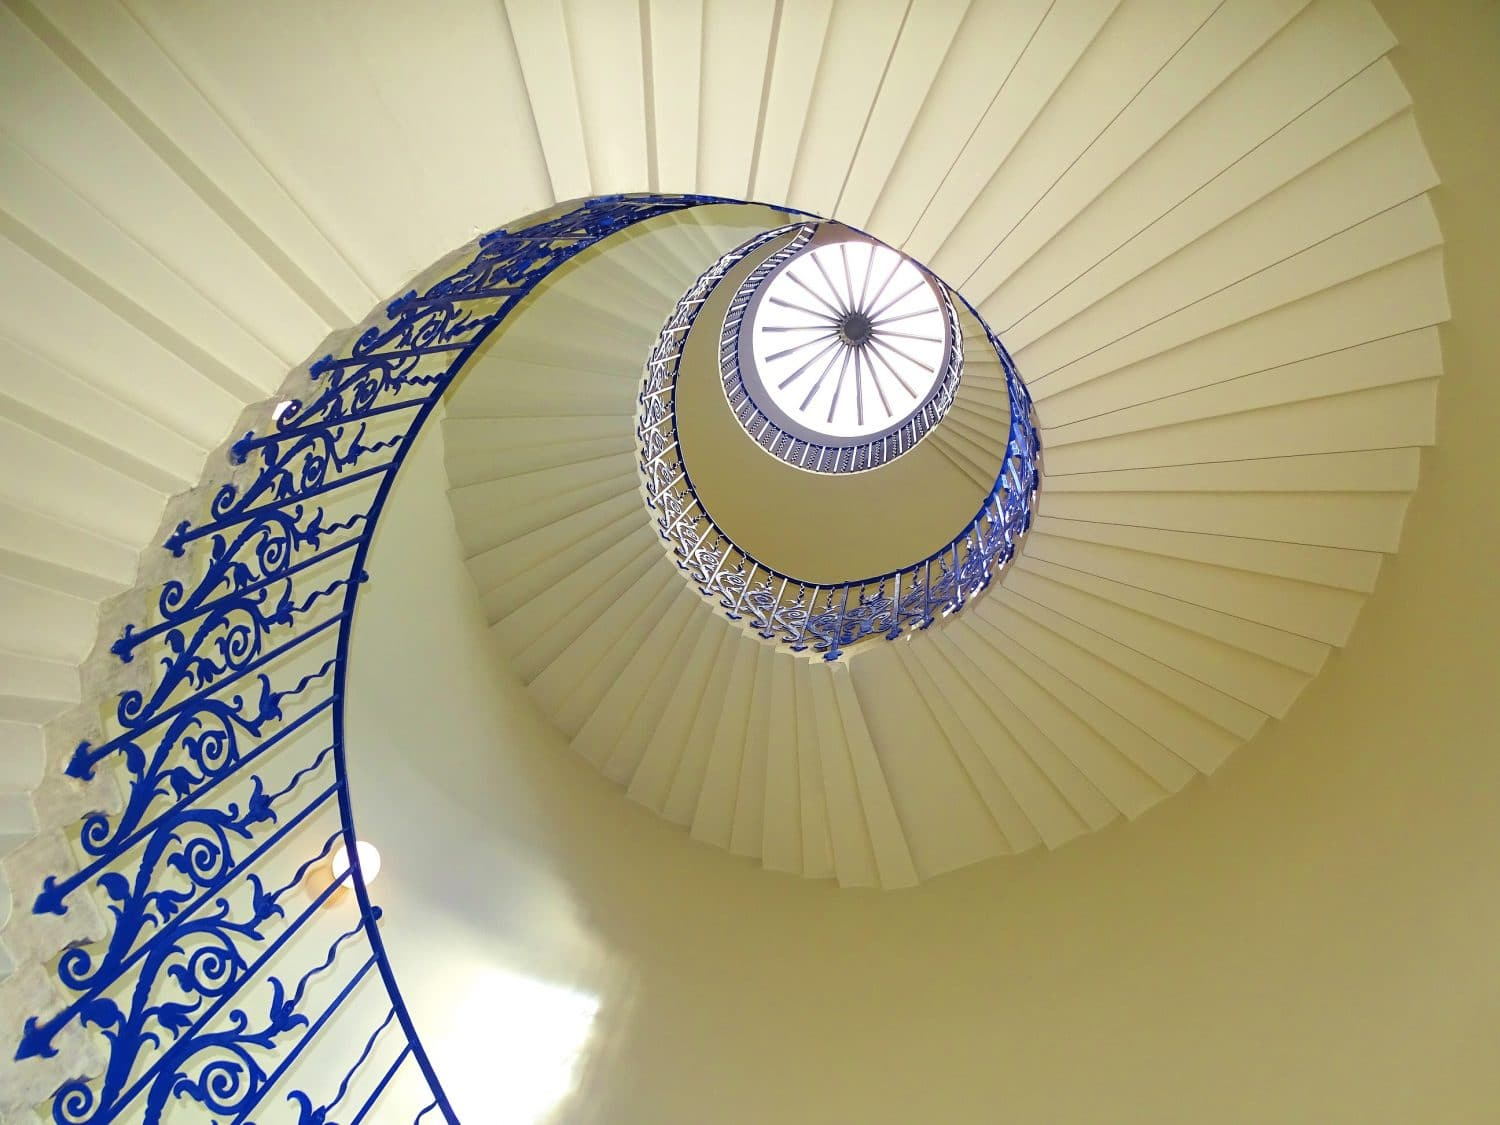 Visit the Queen's House, Greenwich, to see the Tulip Stairs